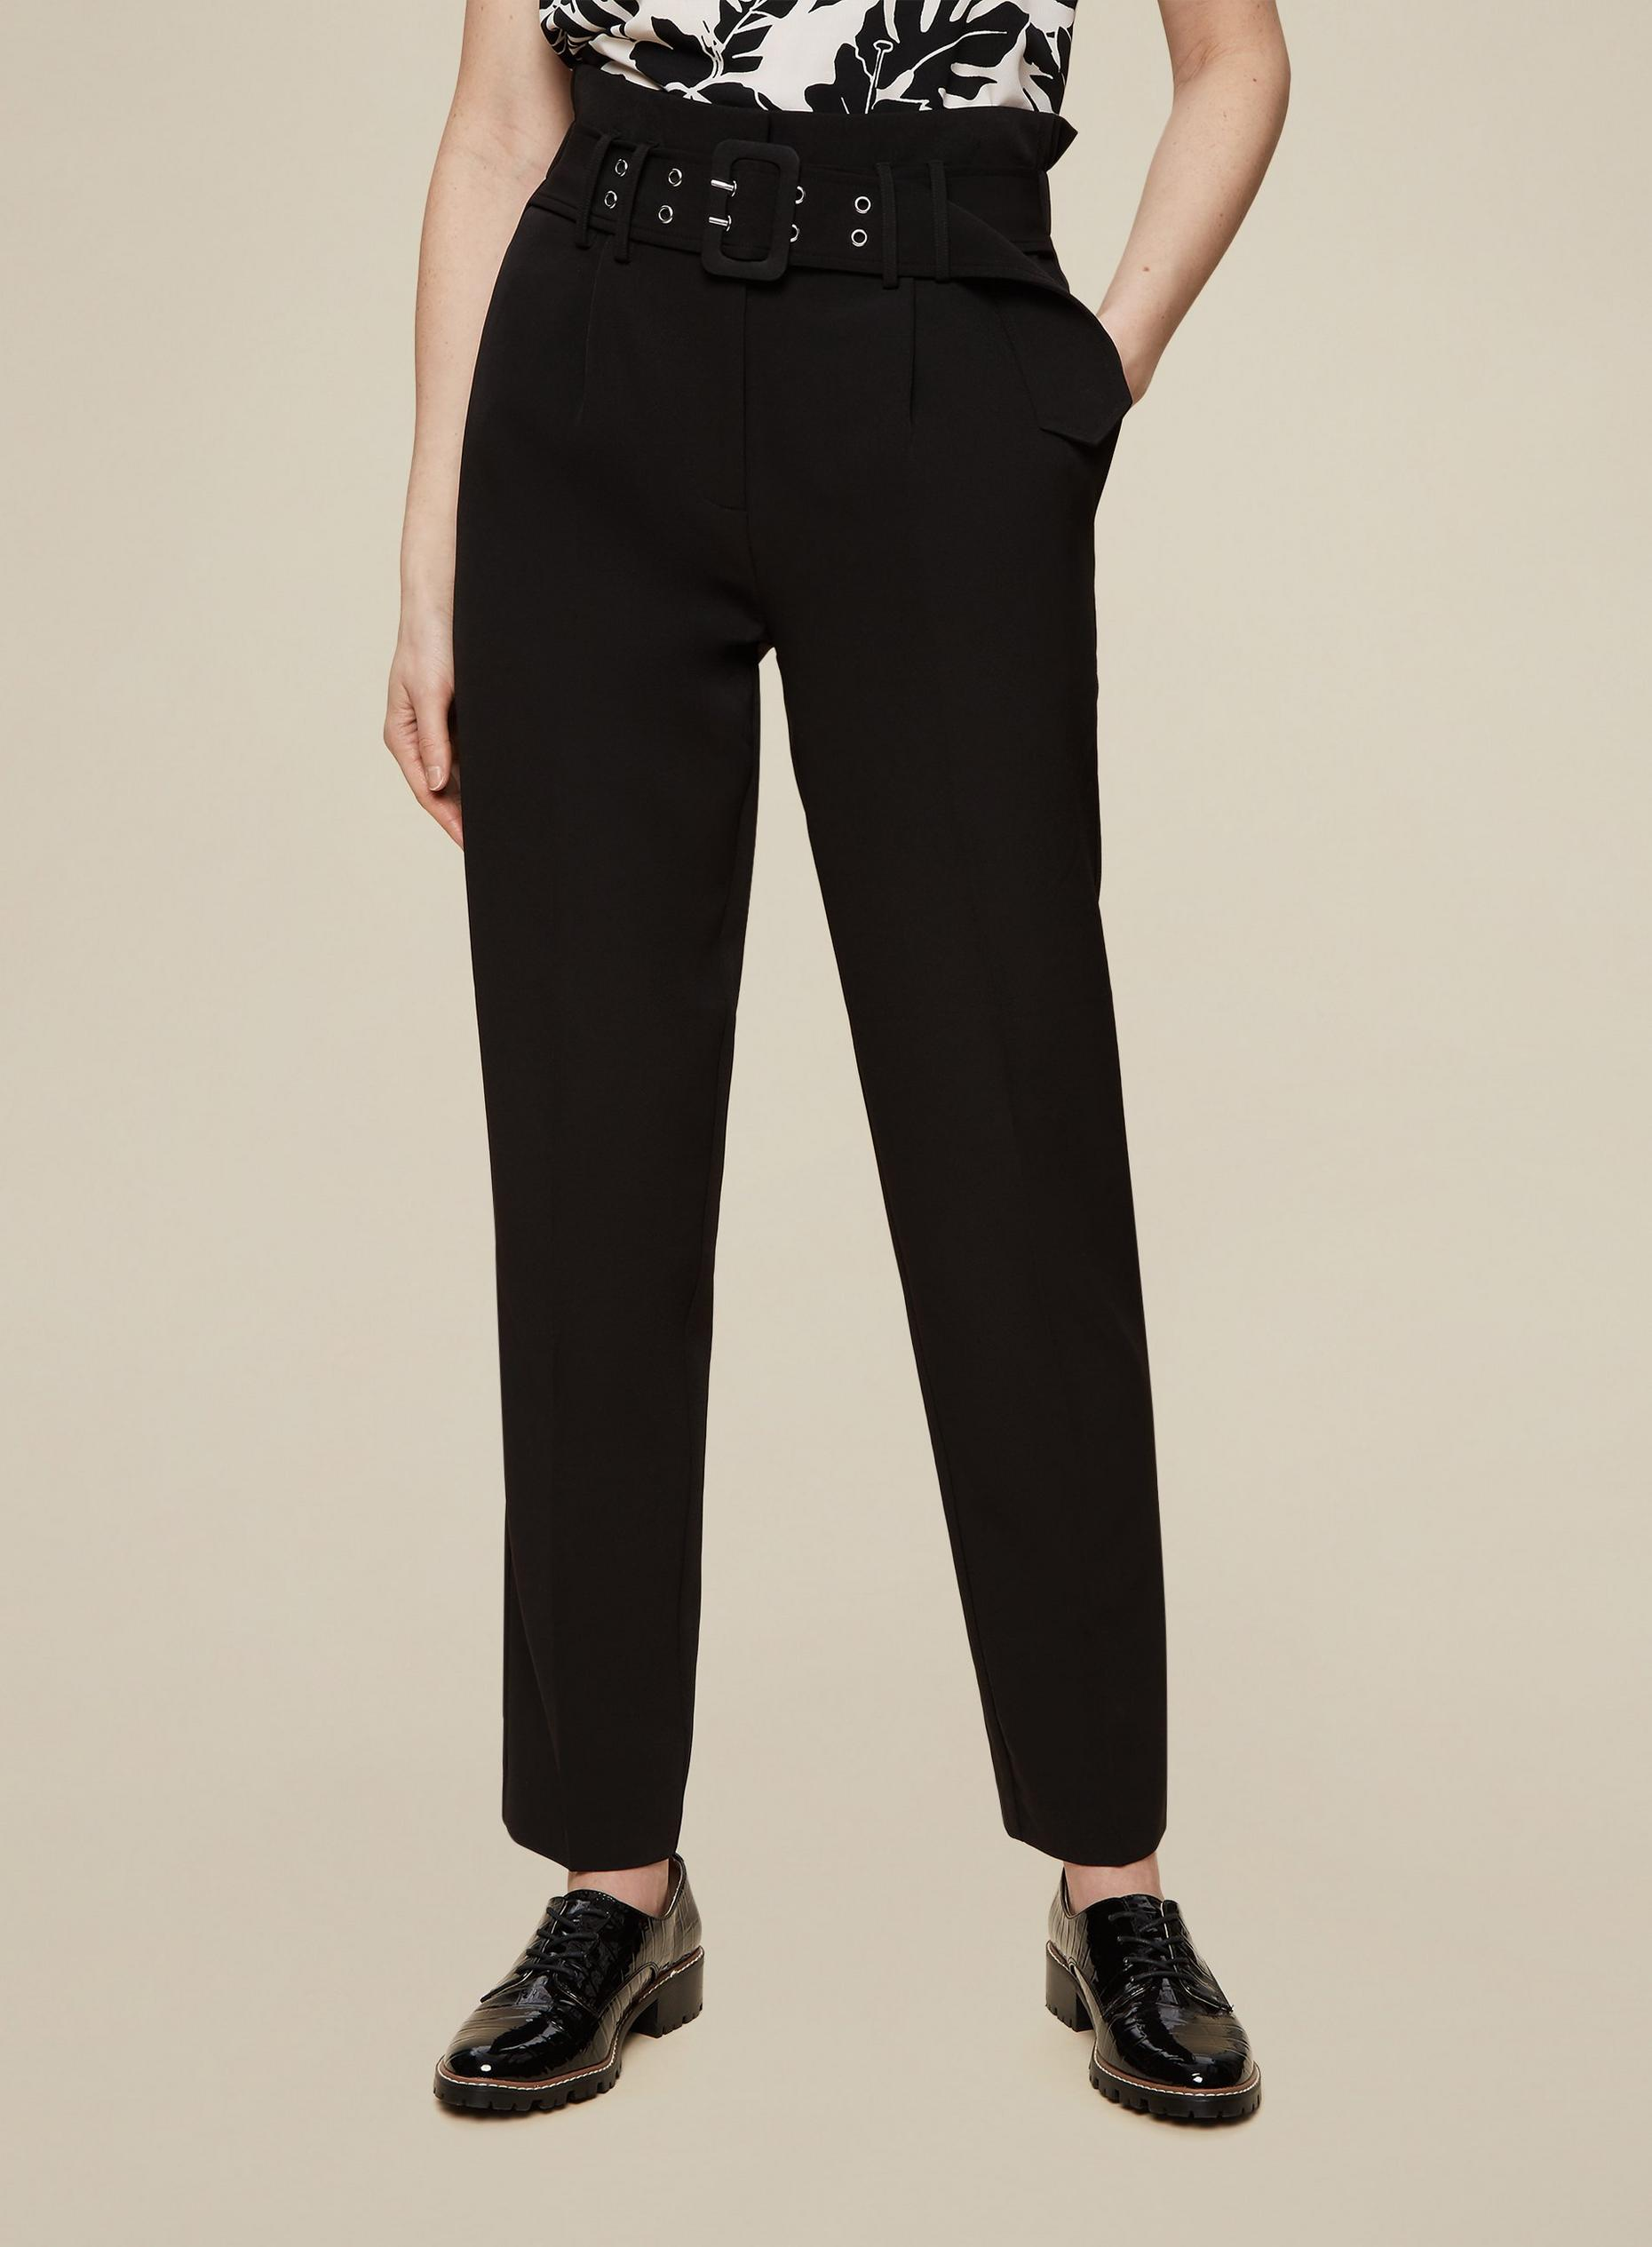 Tall Black Belted Trousers